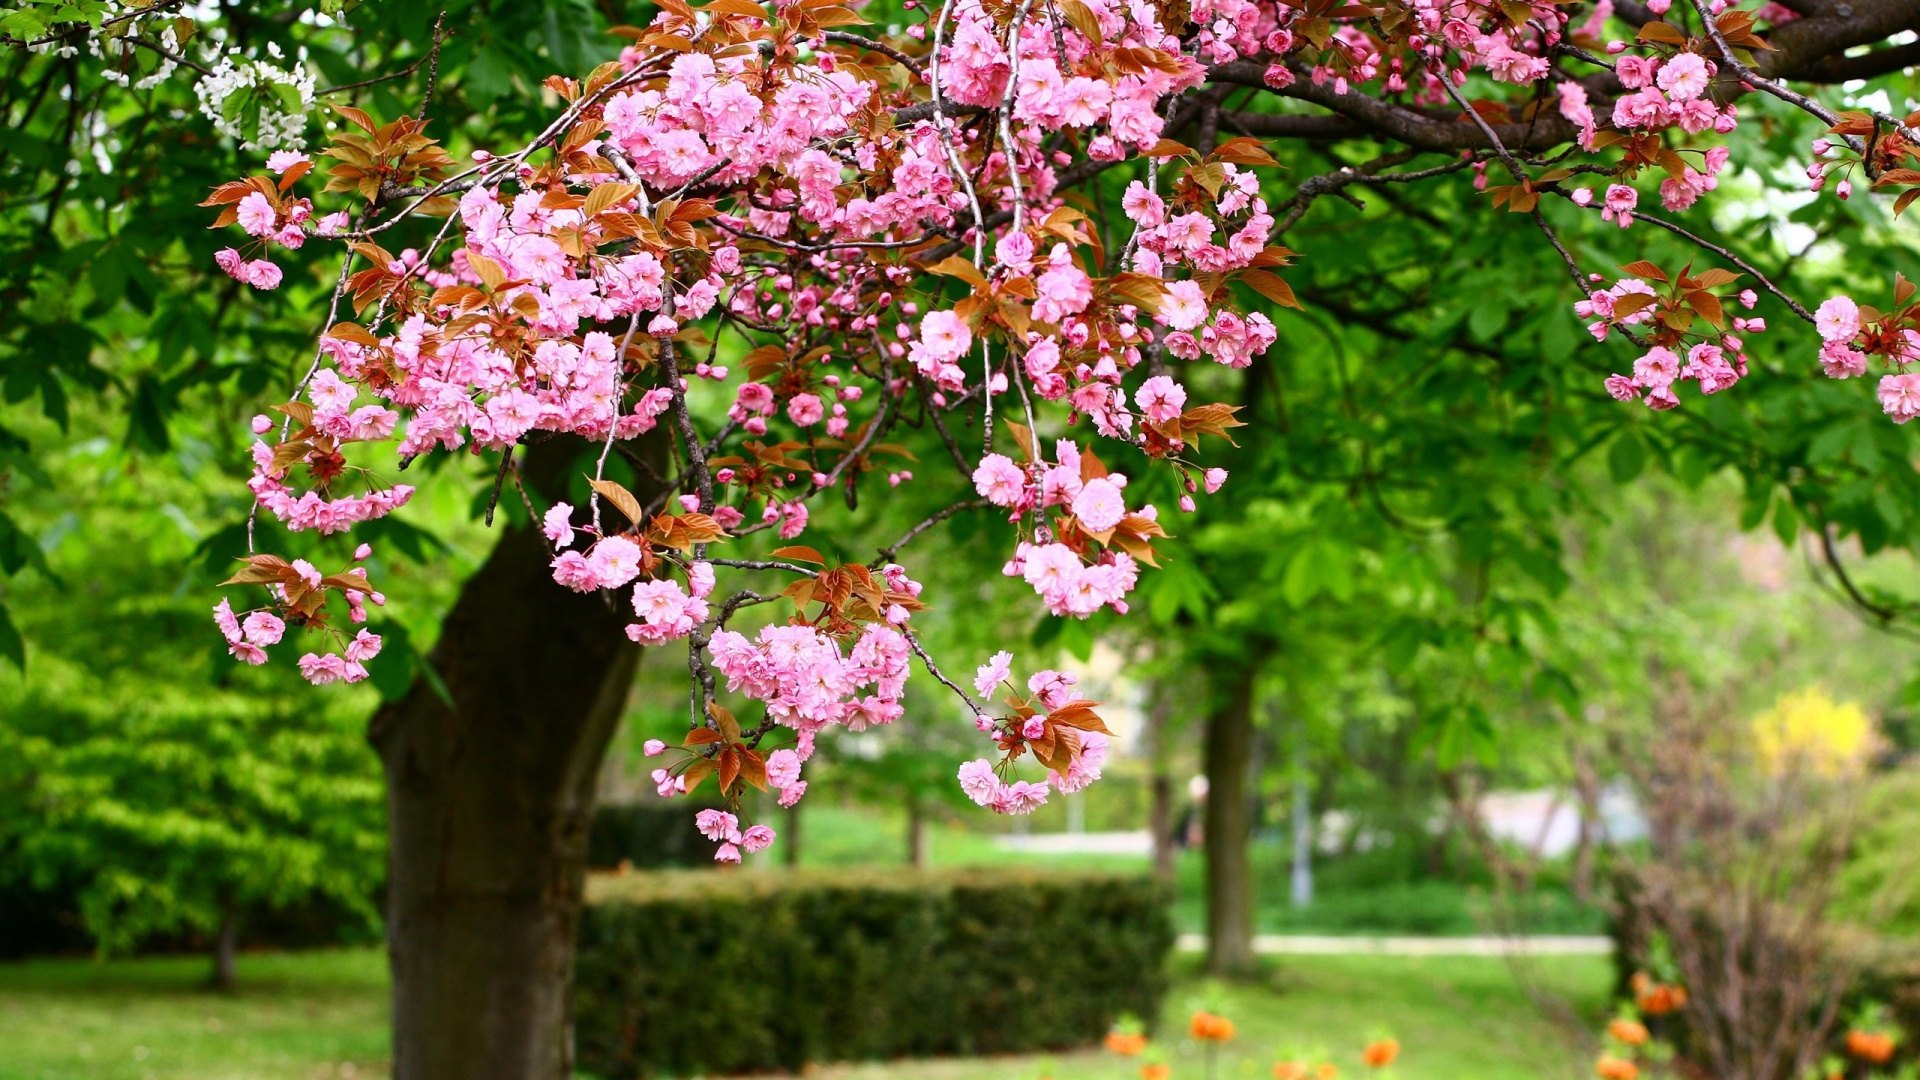 Hd Wallpaper Spring